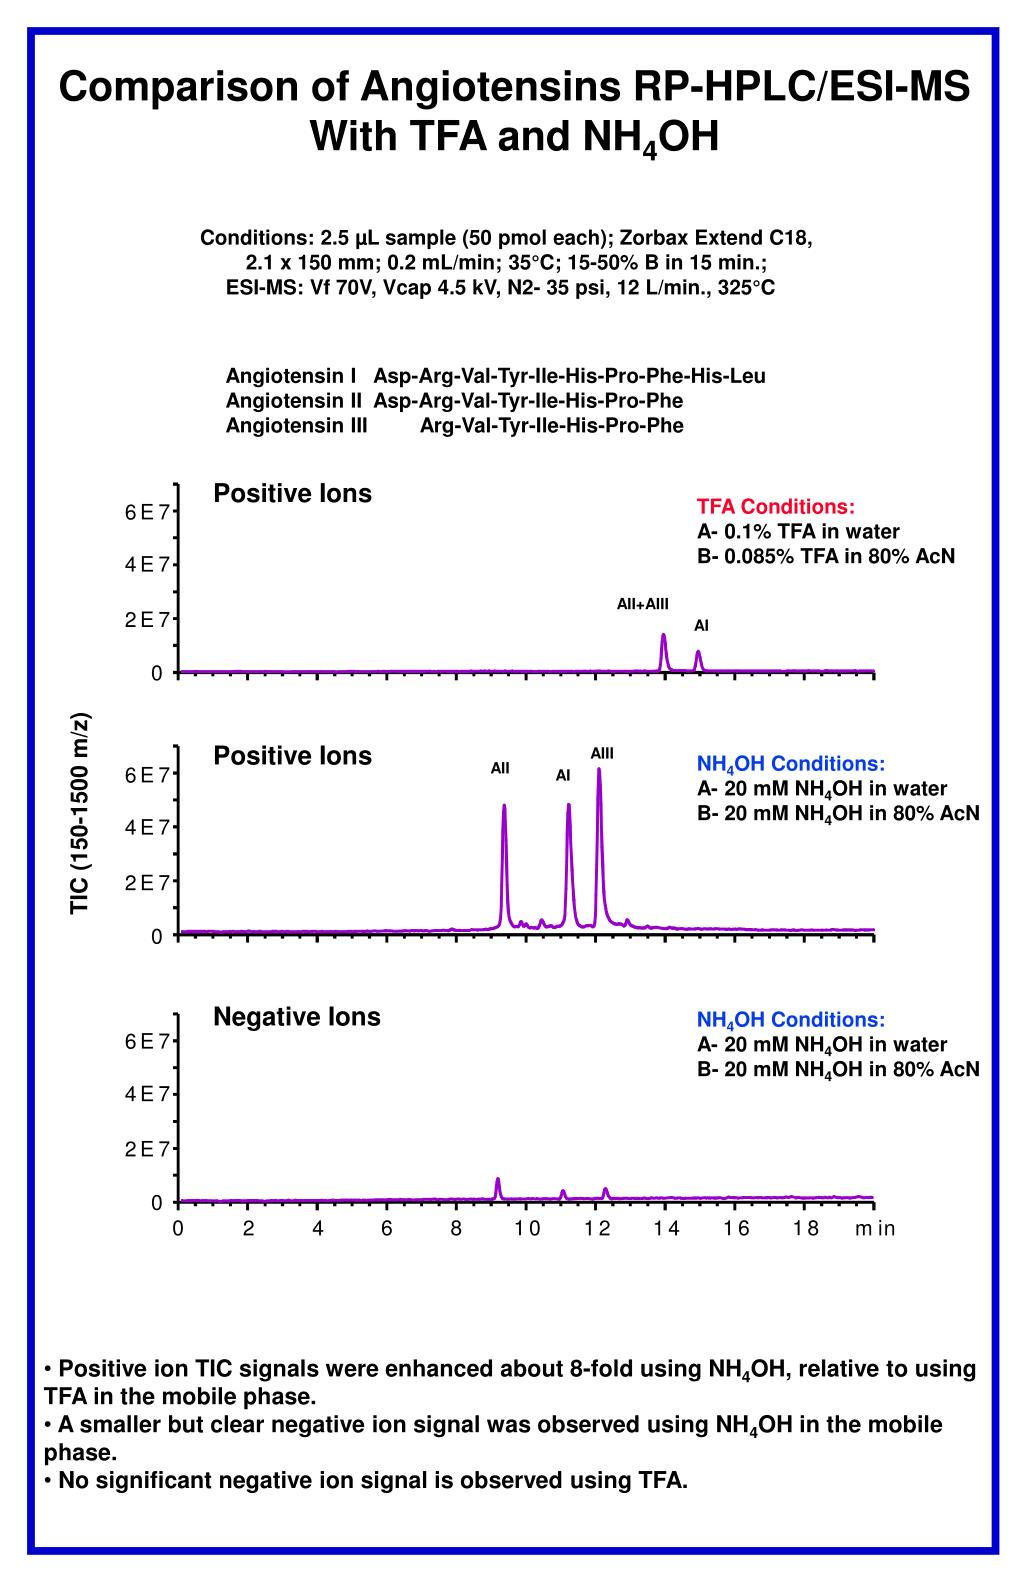 Comparison of Angiotensins RP-HPLC/ESI-MS